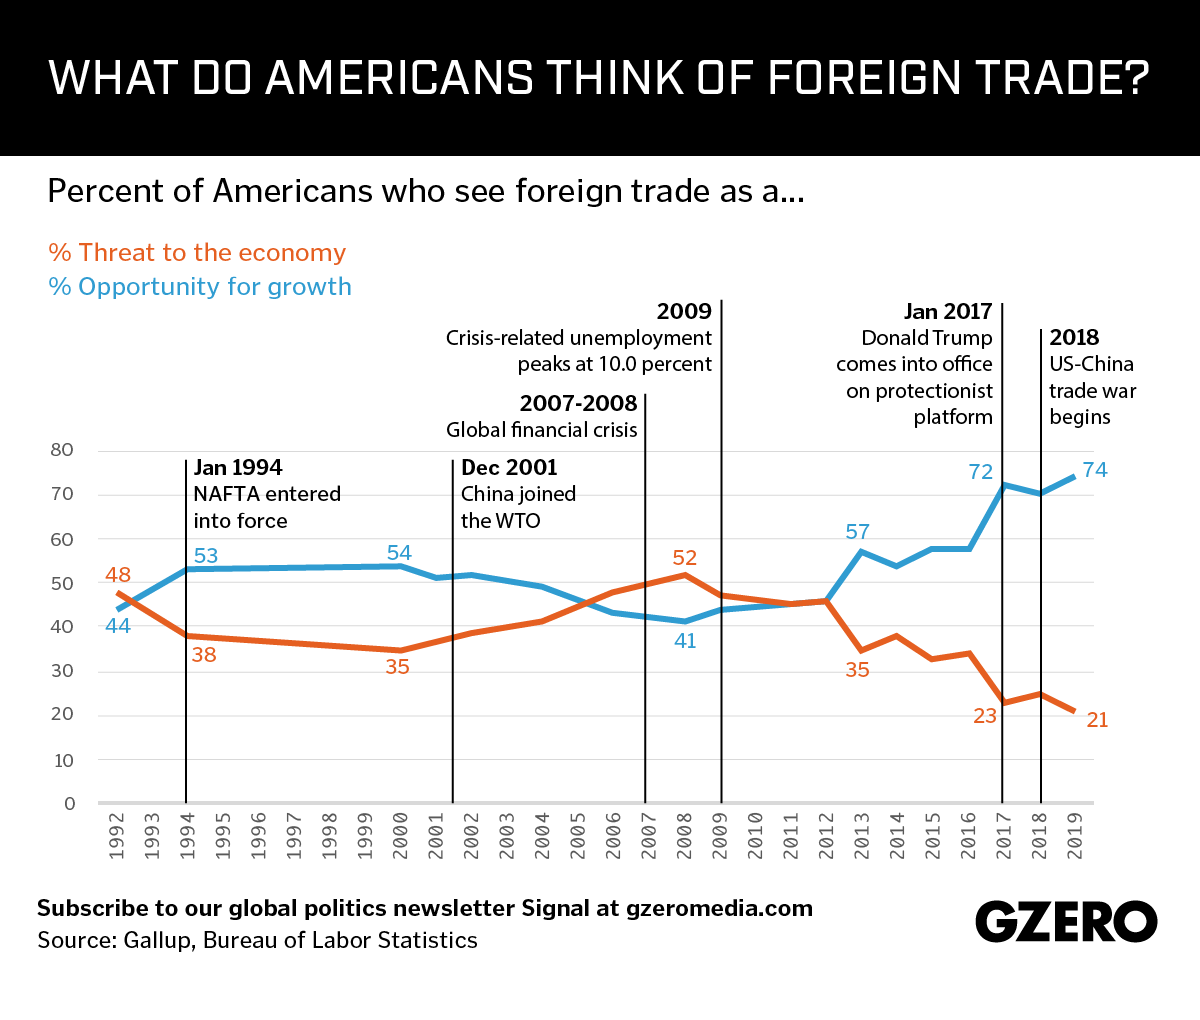 Graphic Truth: Americans' views on trade